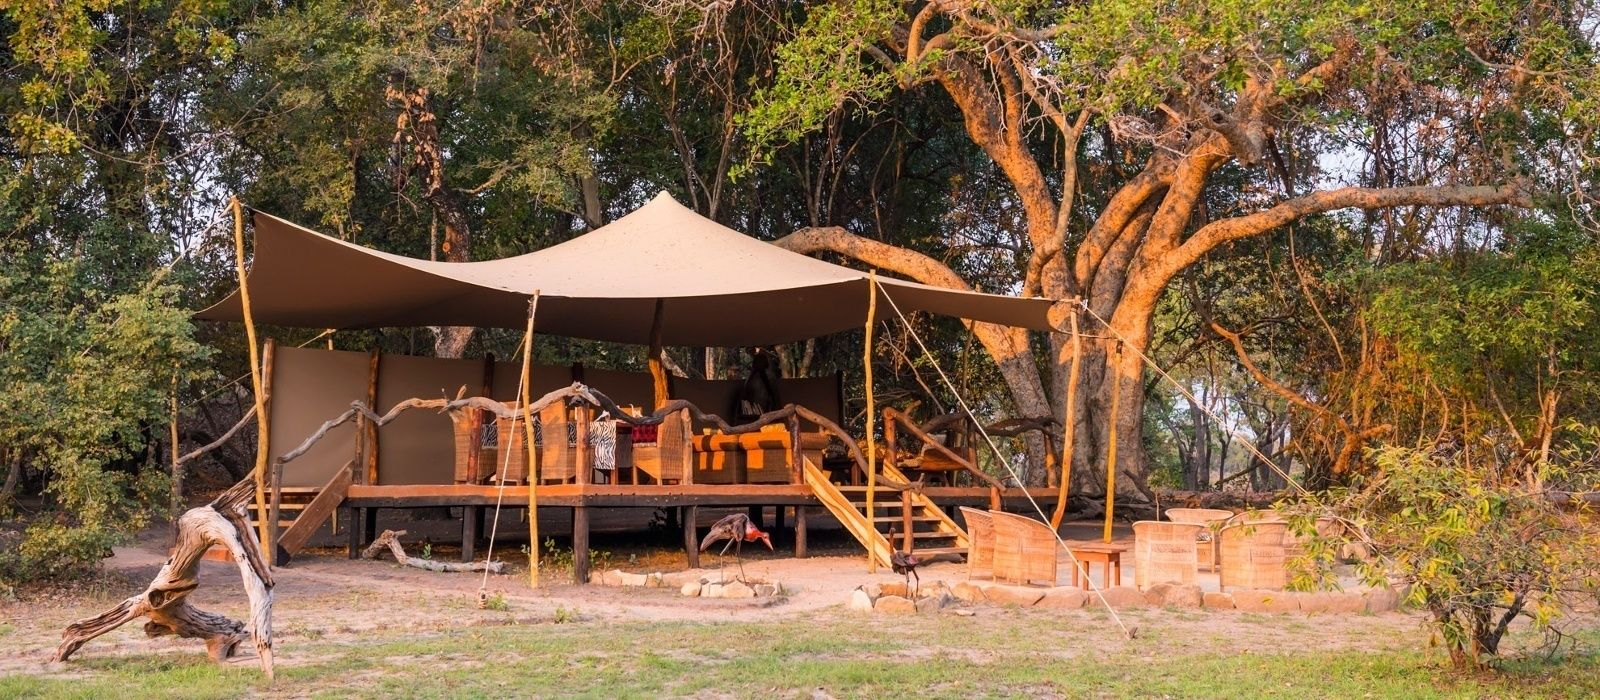 Hotel Mukambi Safari Lodge Zambia